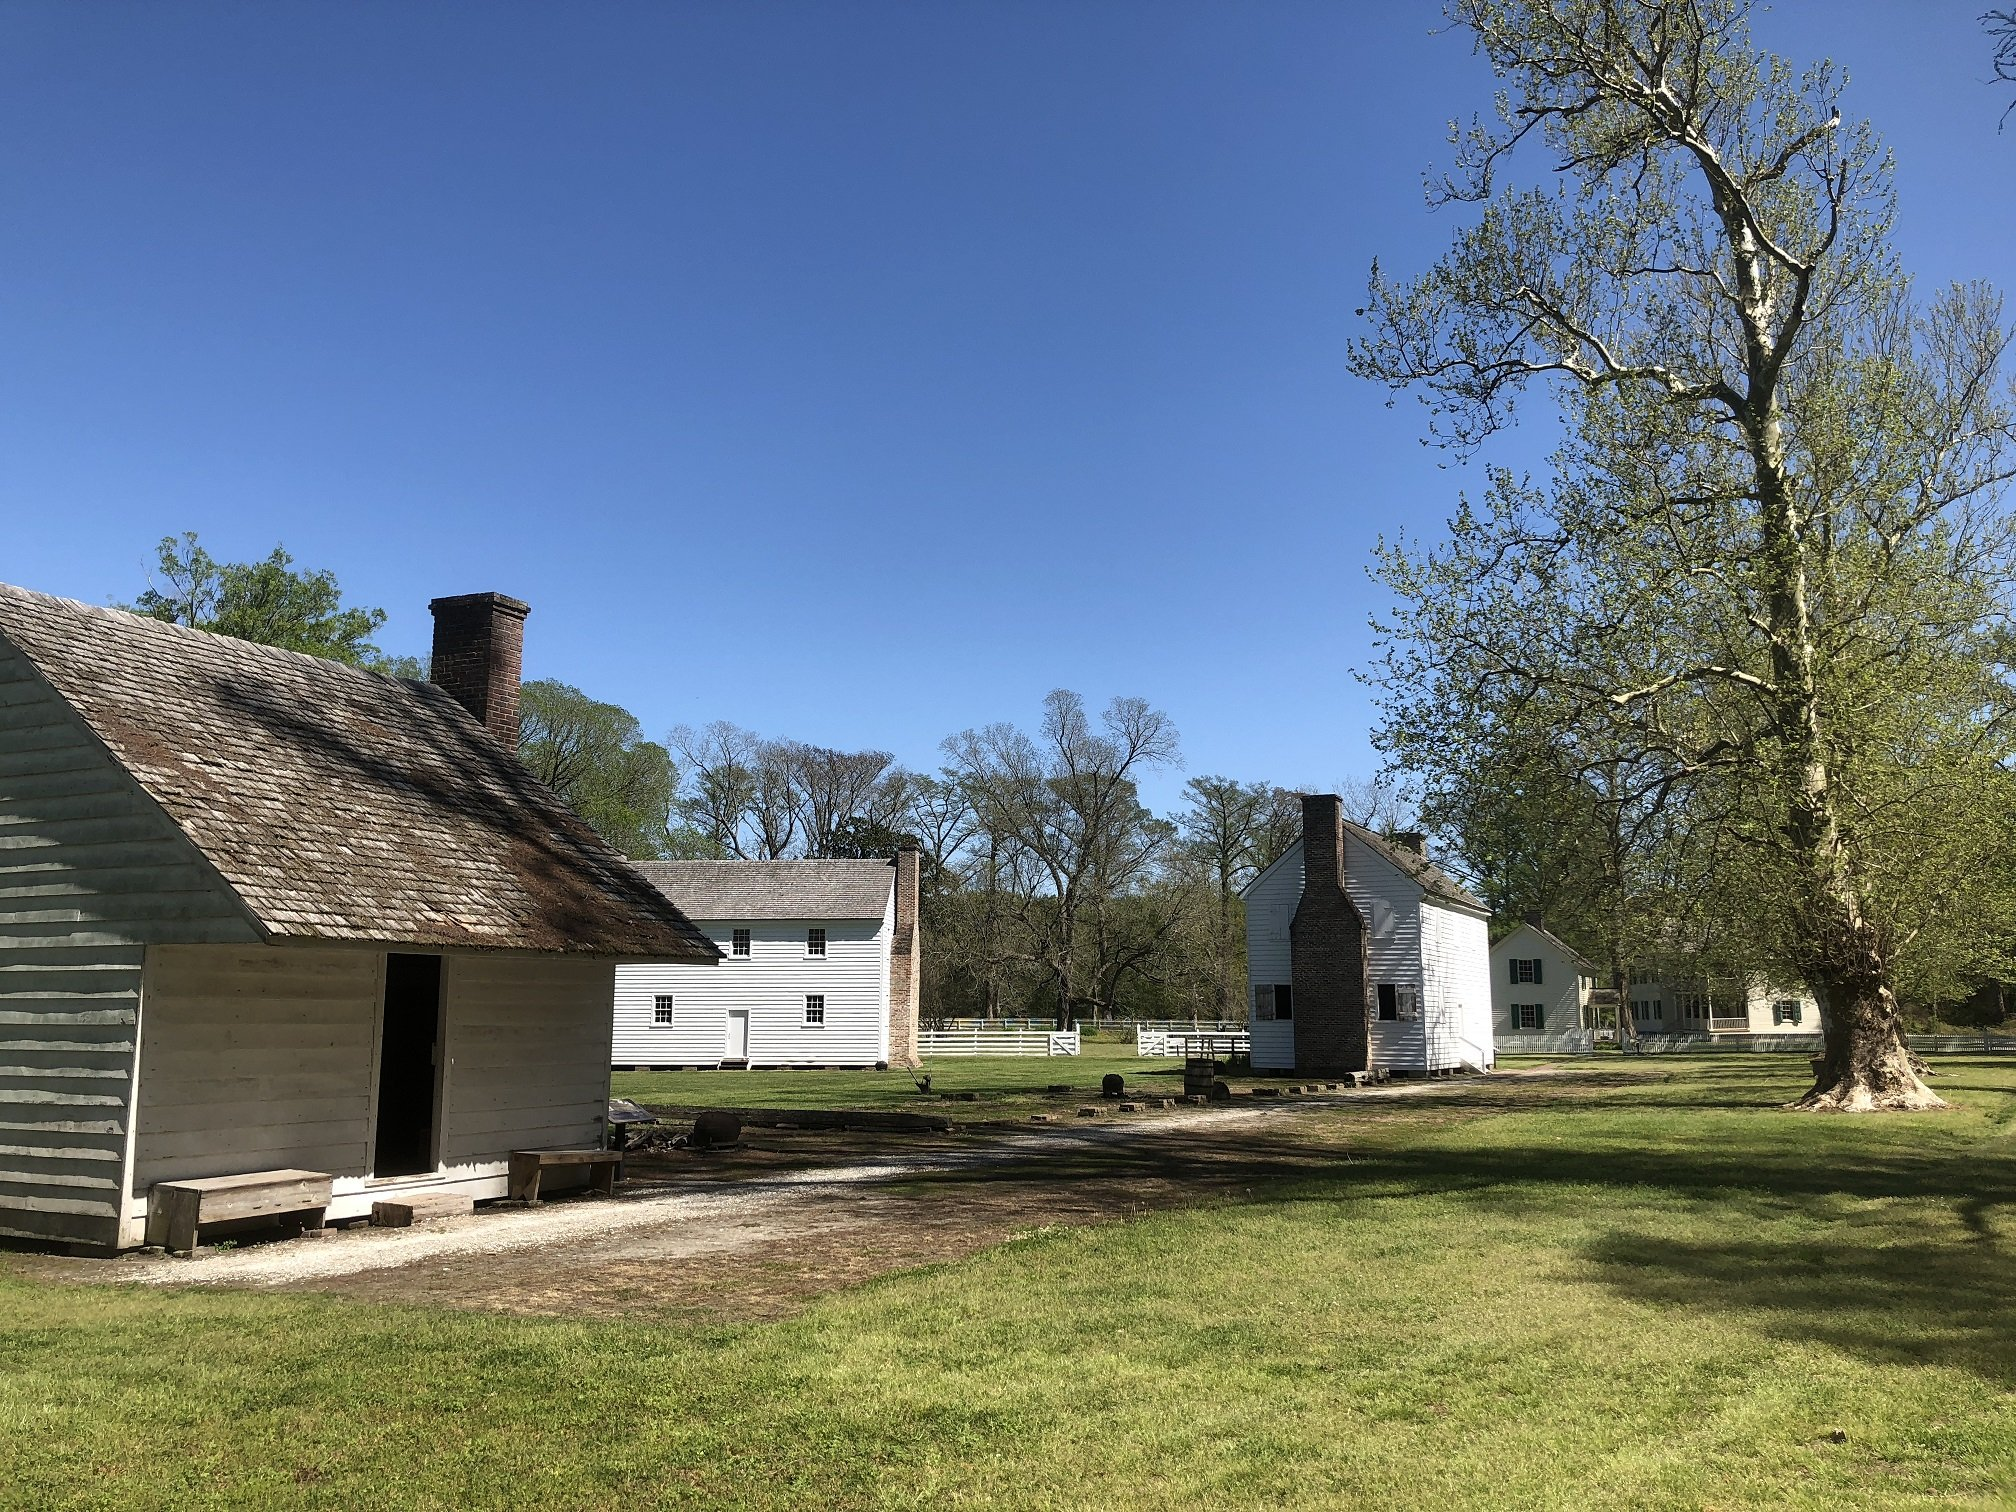 The Enslaved Community (from left to right: Judy and Lewis' House, Hospital, and Suckey Davis' House)